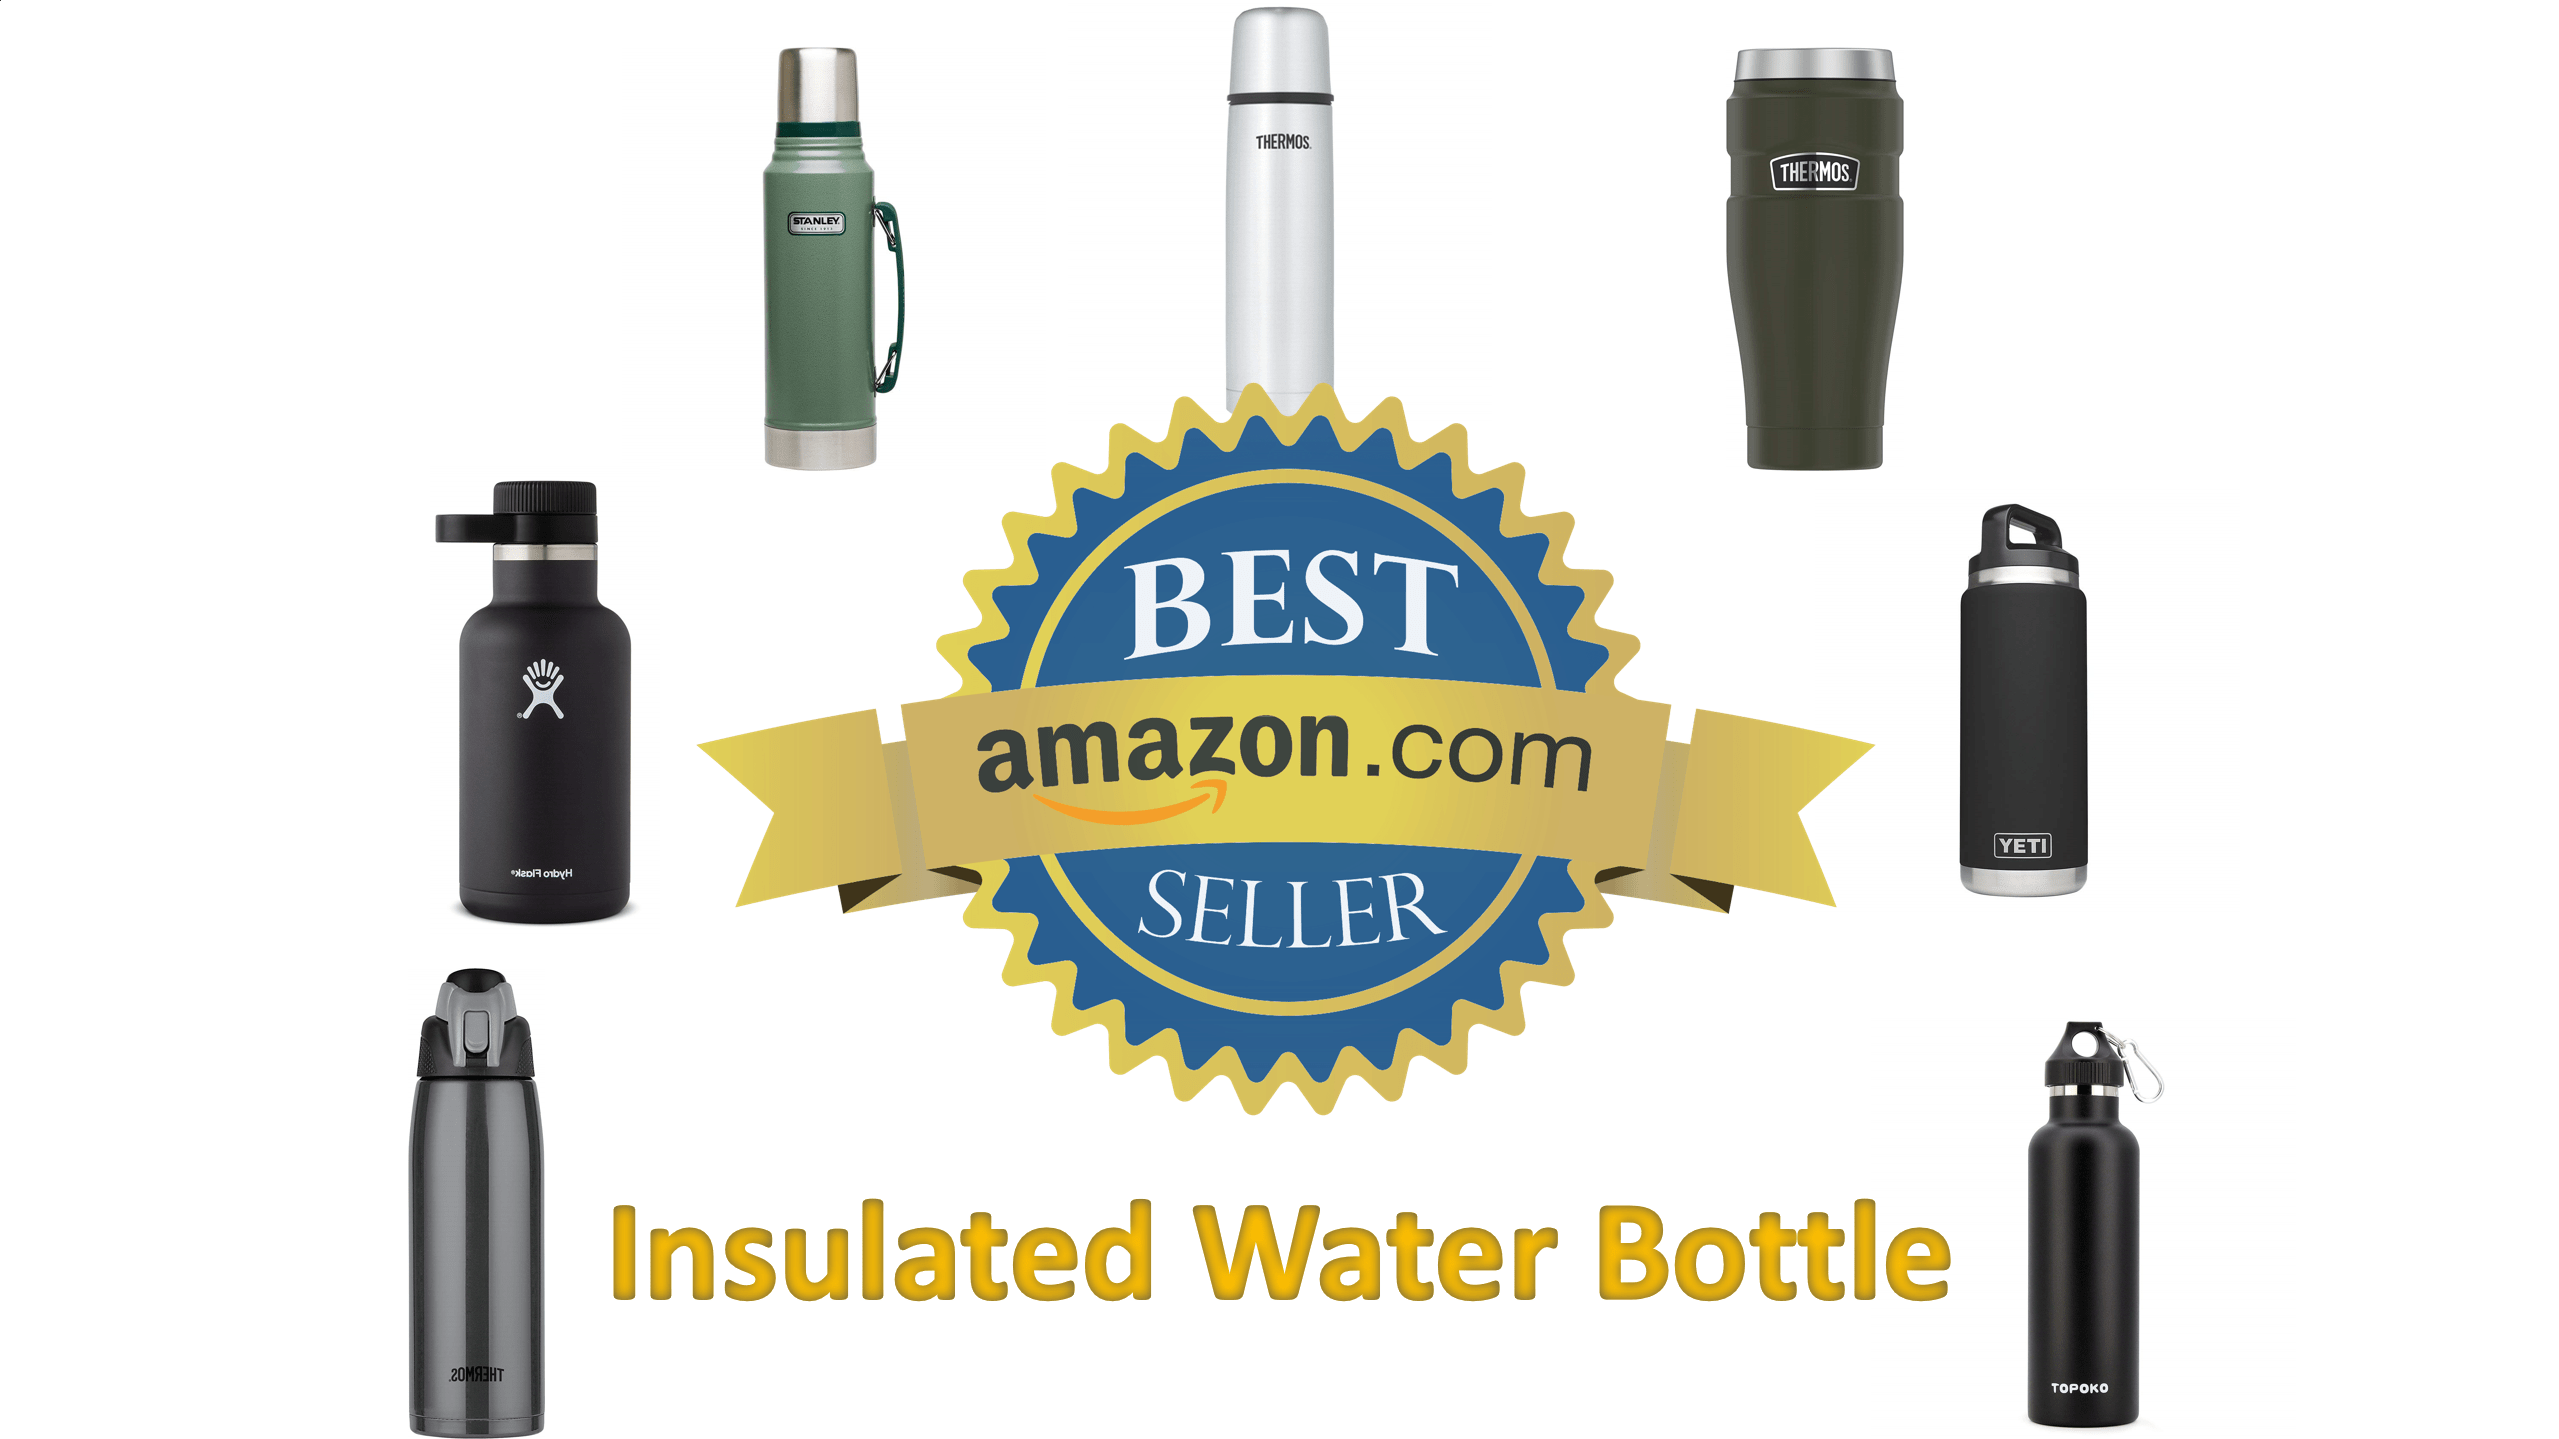 Best Seller in Insulated Water Bottle